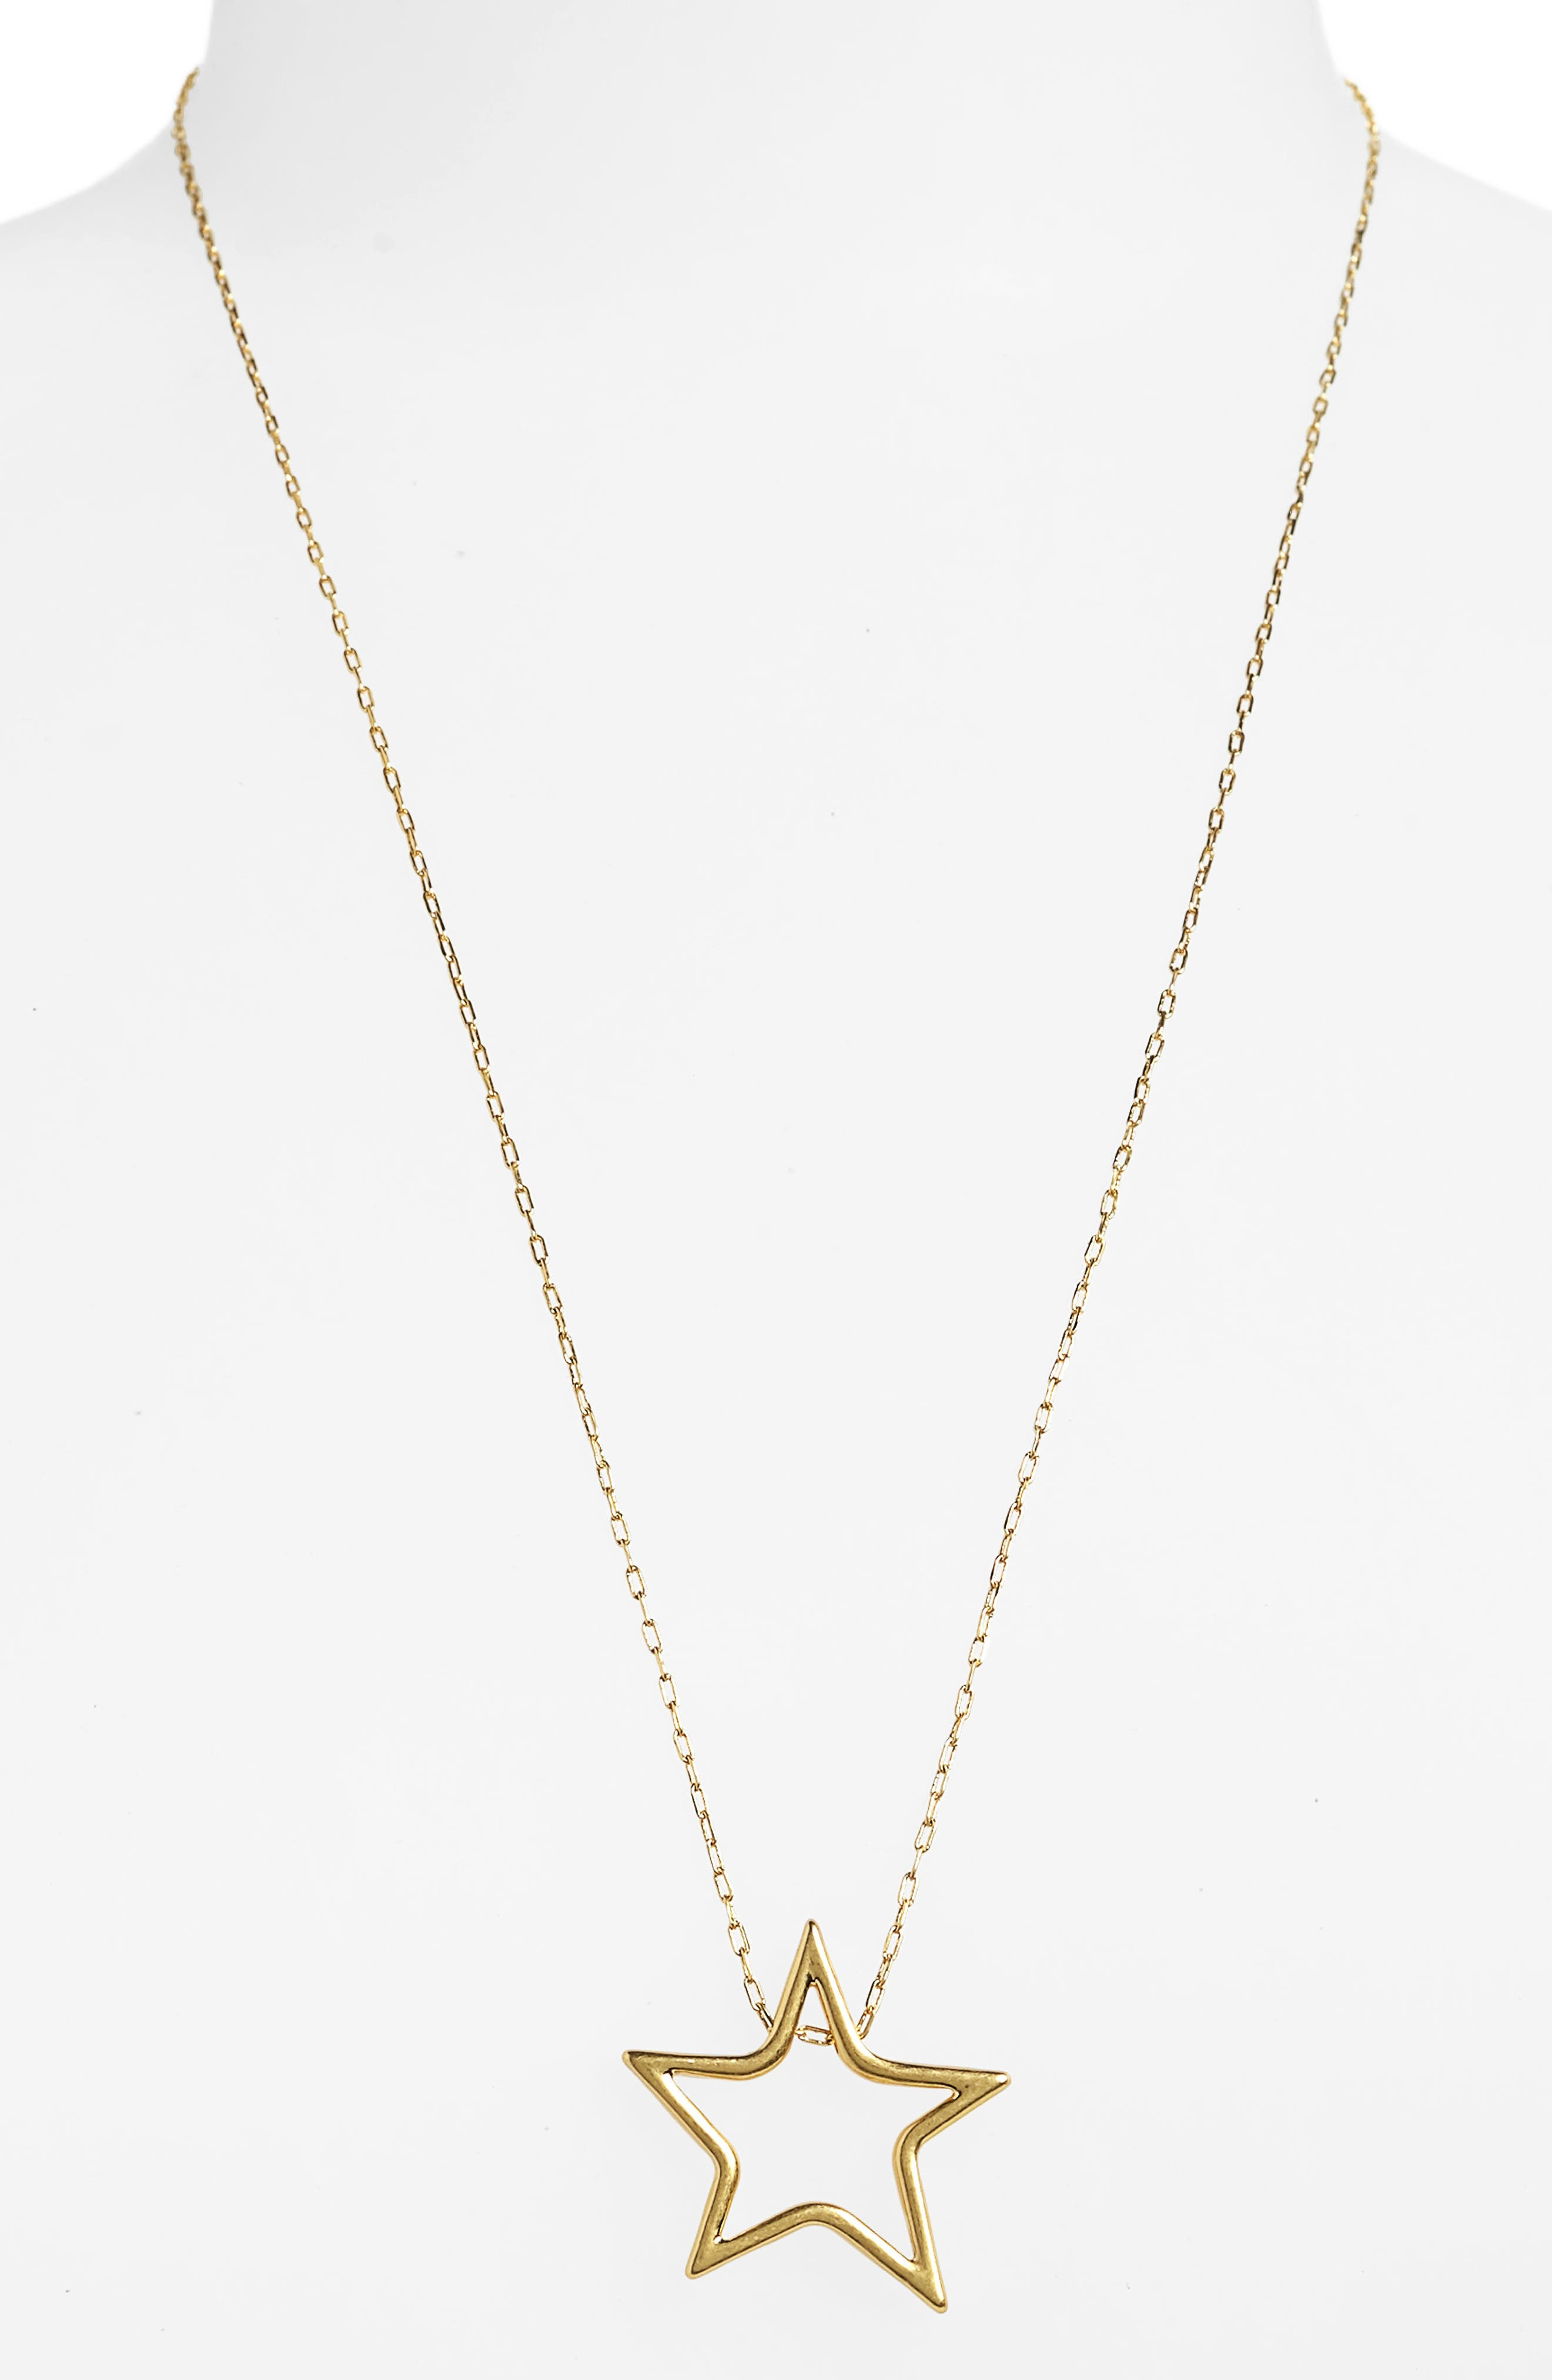 MADEWELL,                             Night Star Necklace,                             Main thumbnail 1, color,                             VINTAGE GOLD